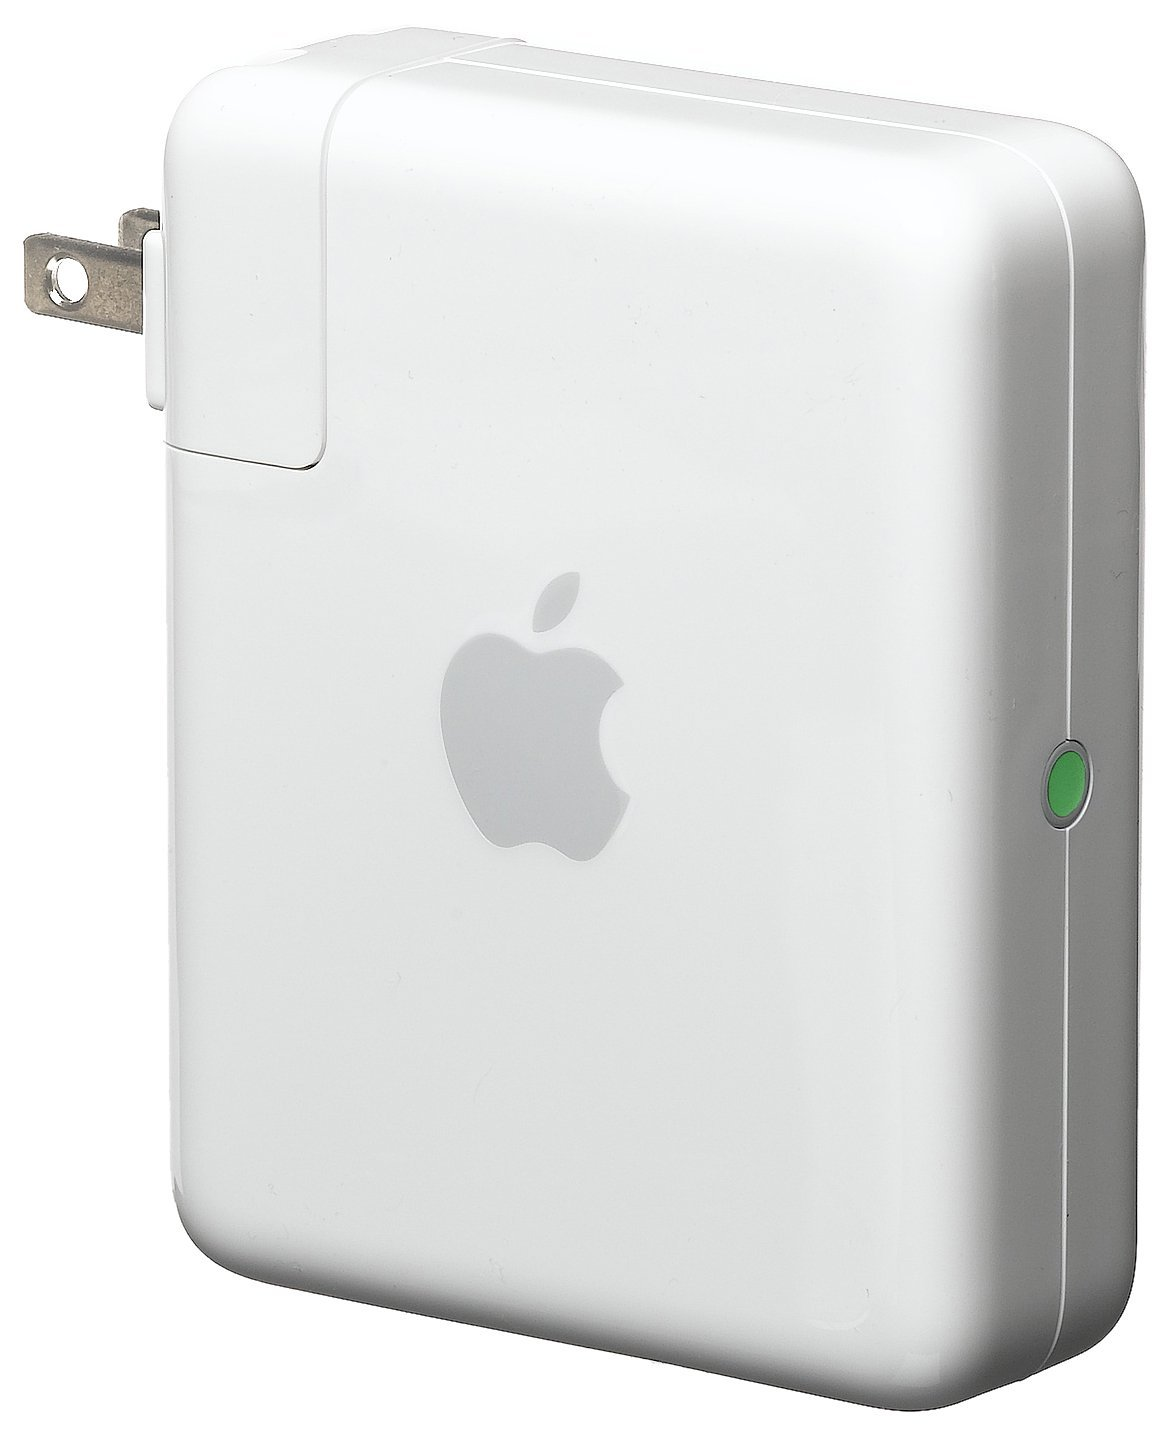 Apple Wireless Router Setup